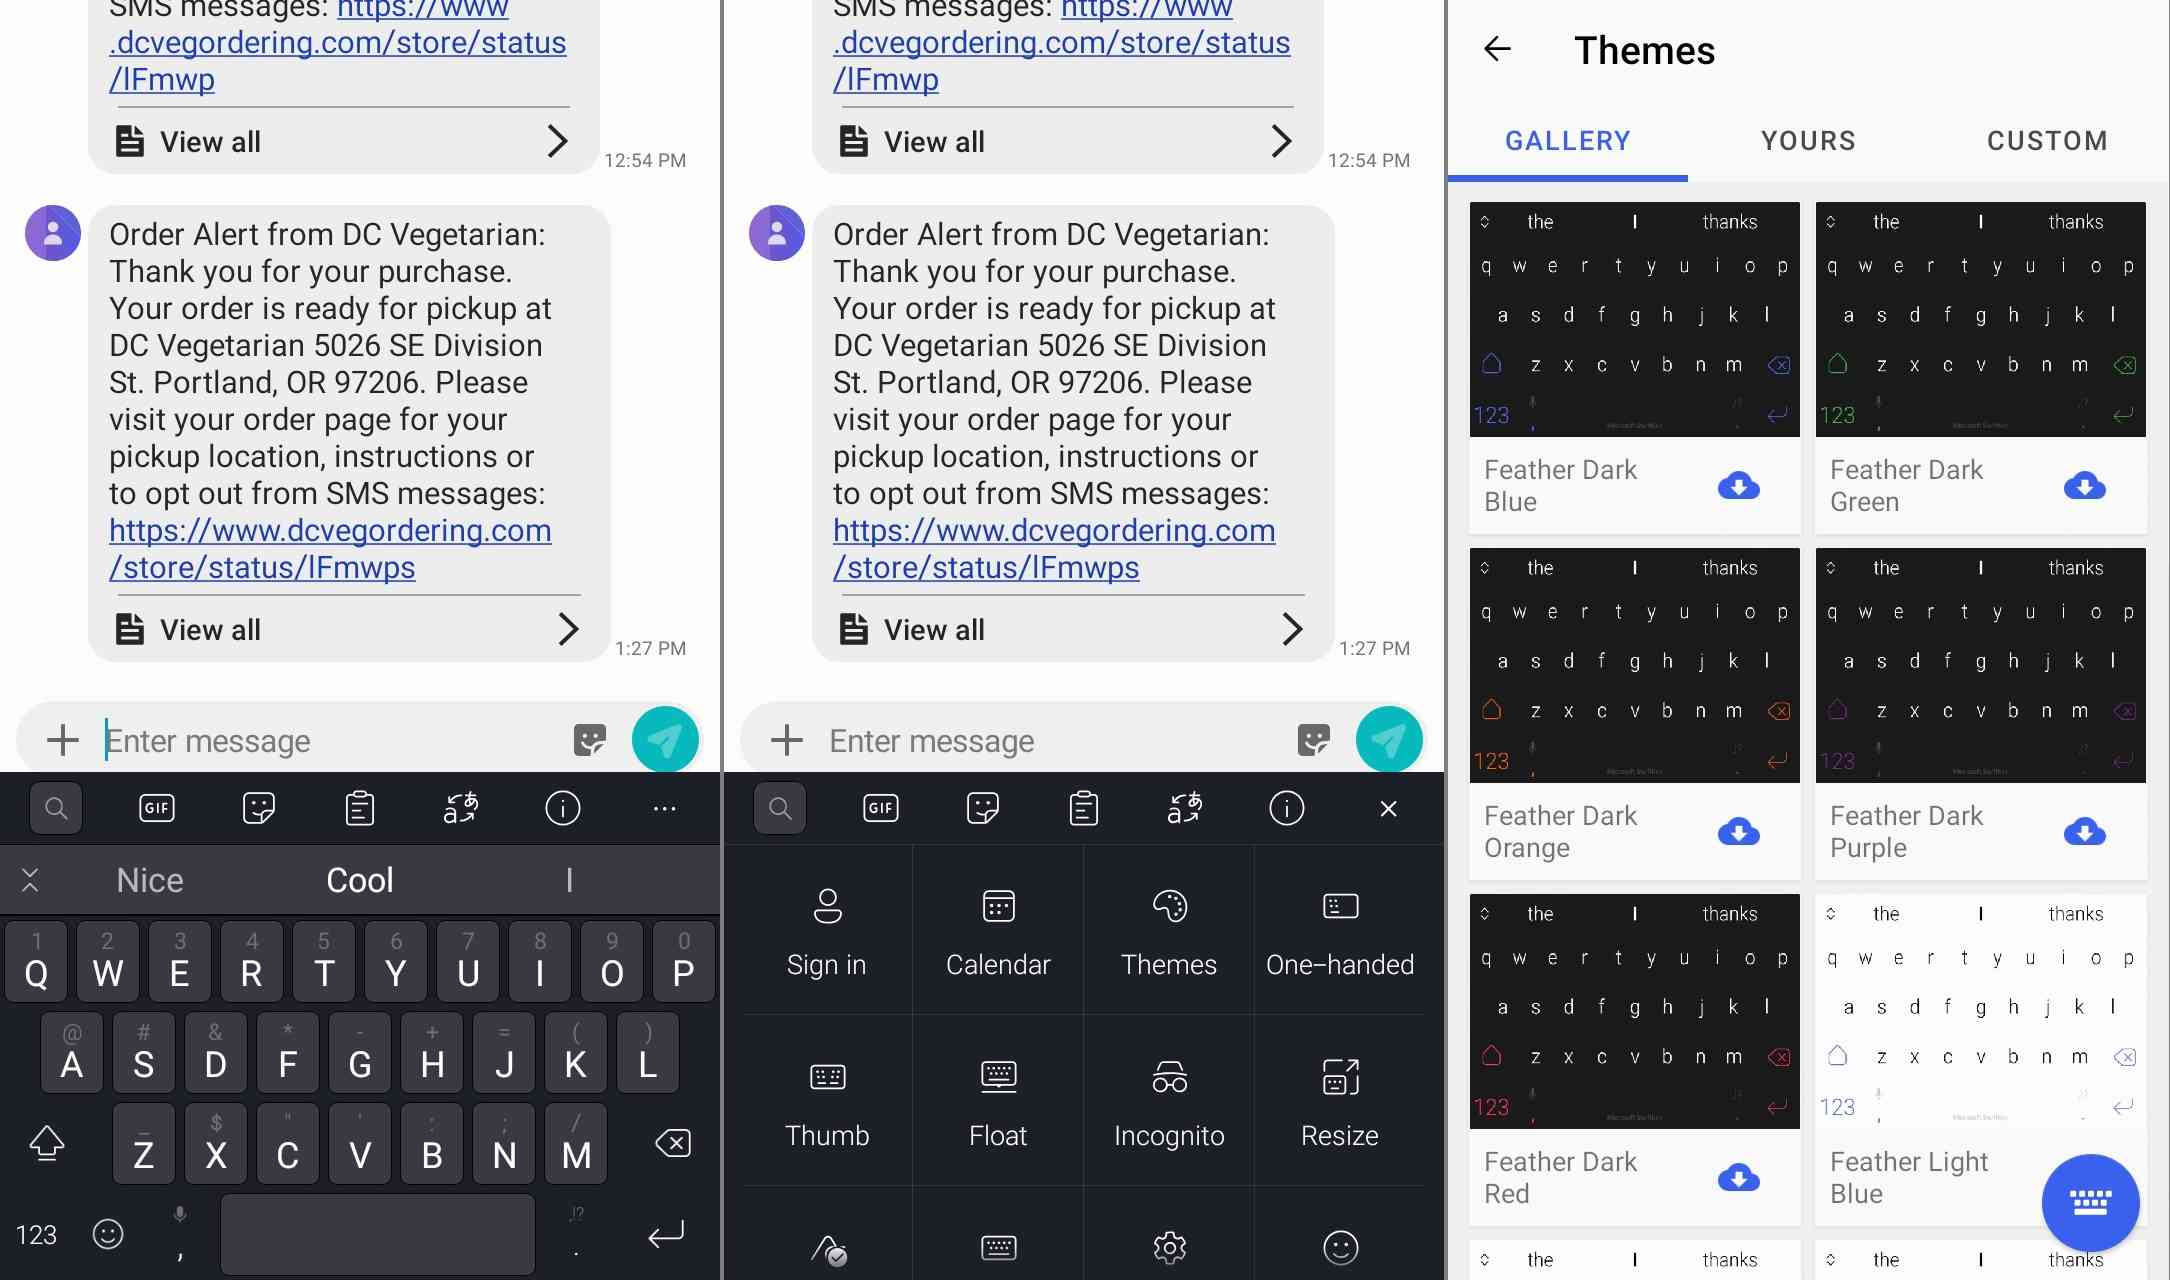 Swiftkey keyboard app for Android